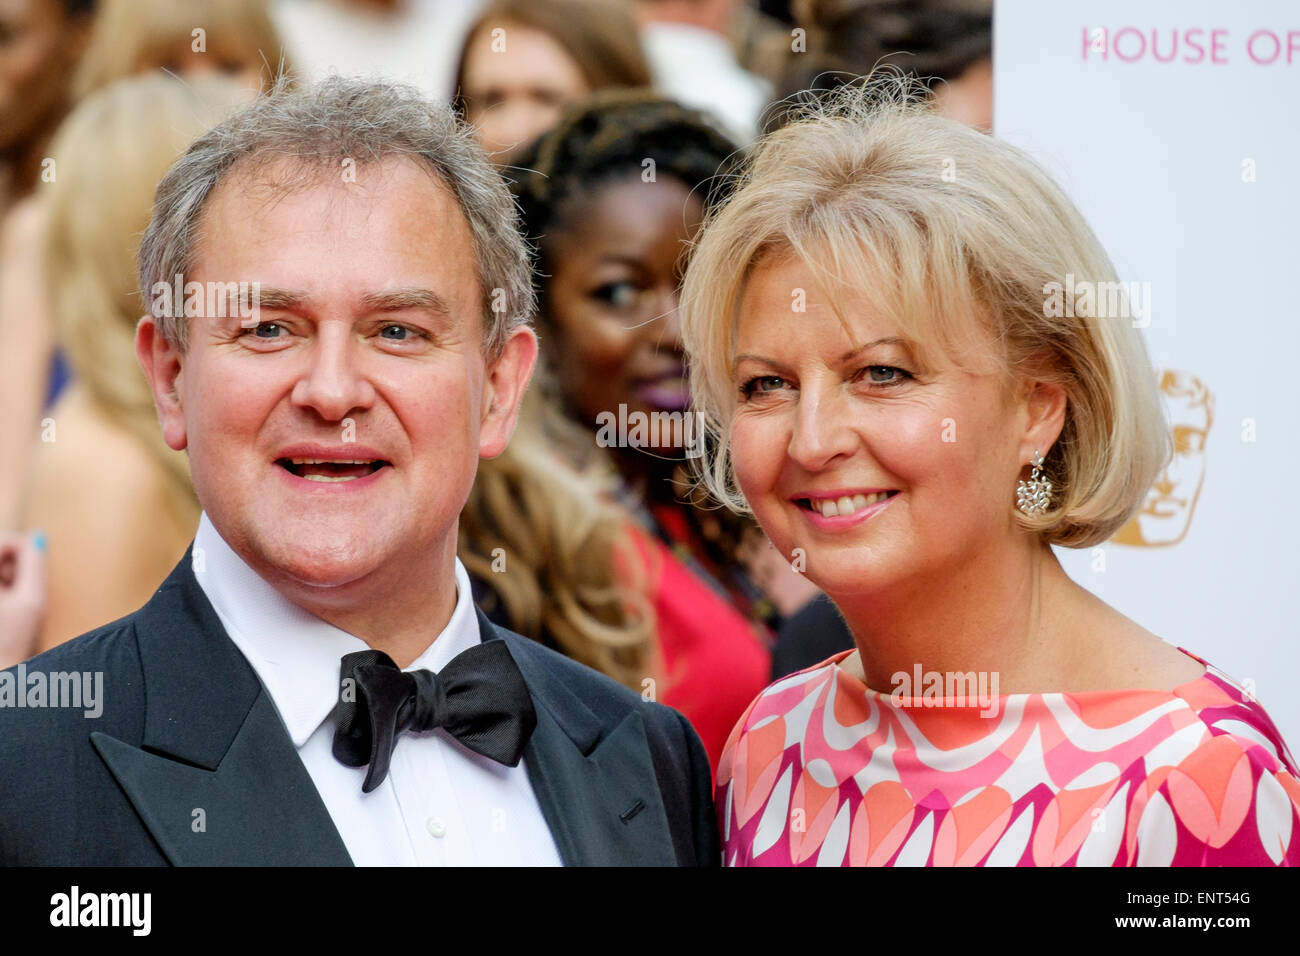 Hugh Bonneville and Lulu Williams attends the HOUSE OF FRASER BRITISH ACADEMY TELEVISION AWARDS 2015 on 10/05/2015 - Stock Image